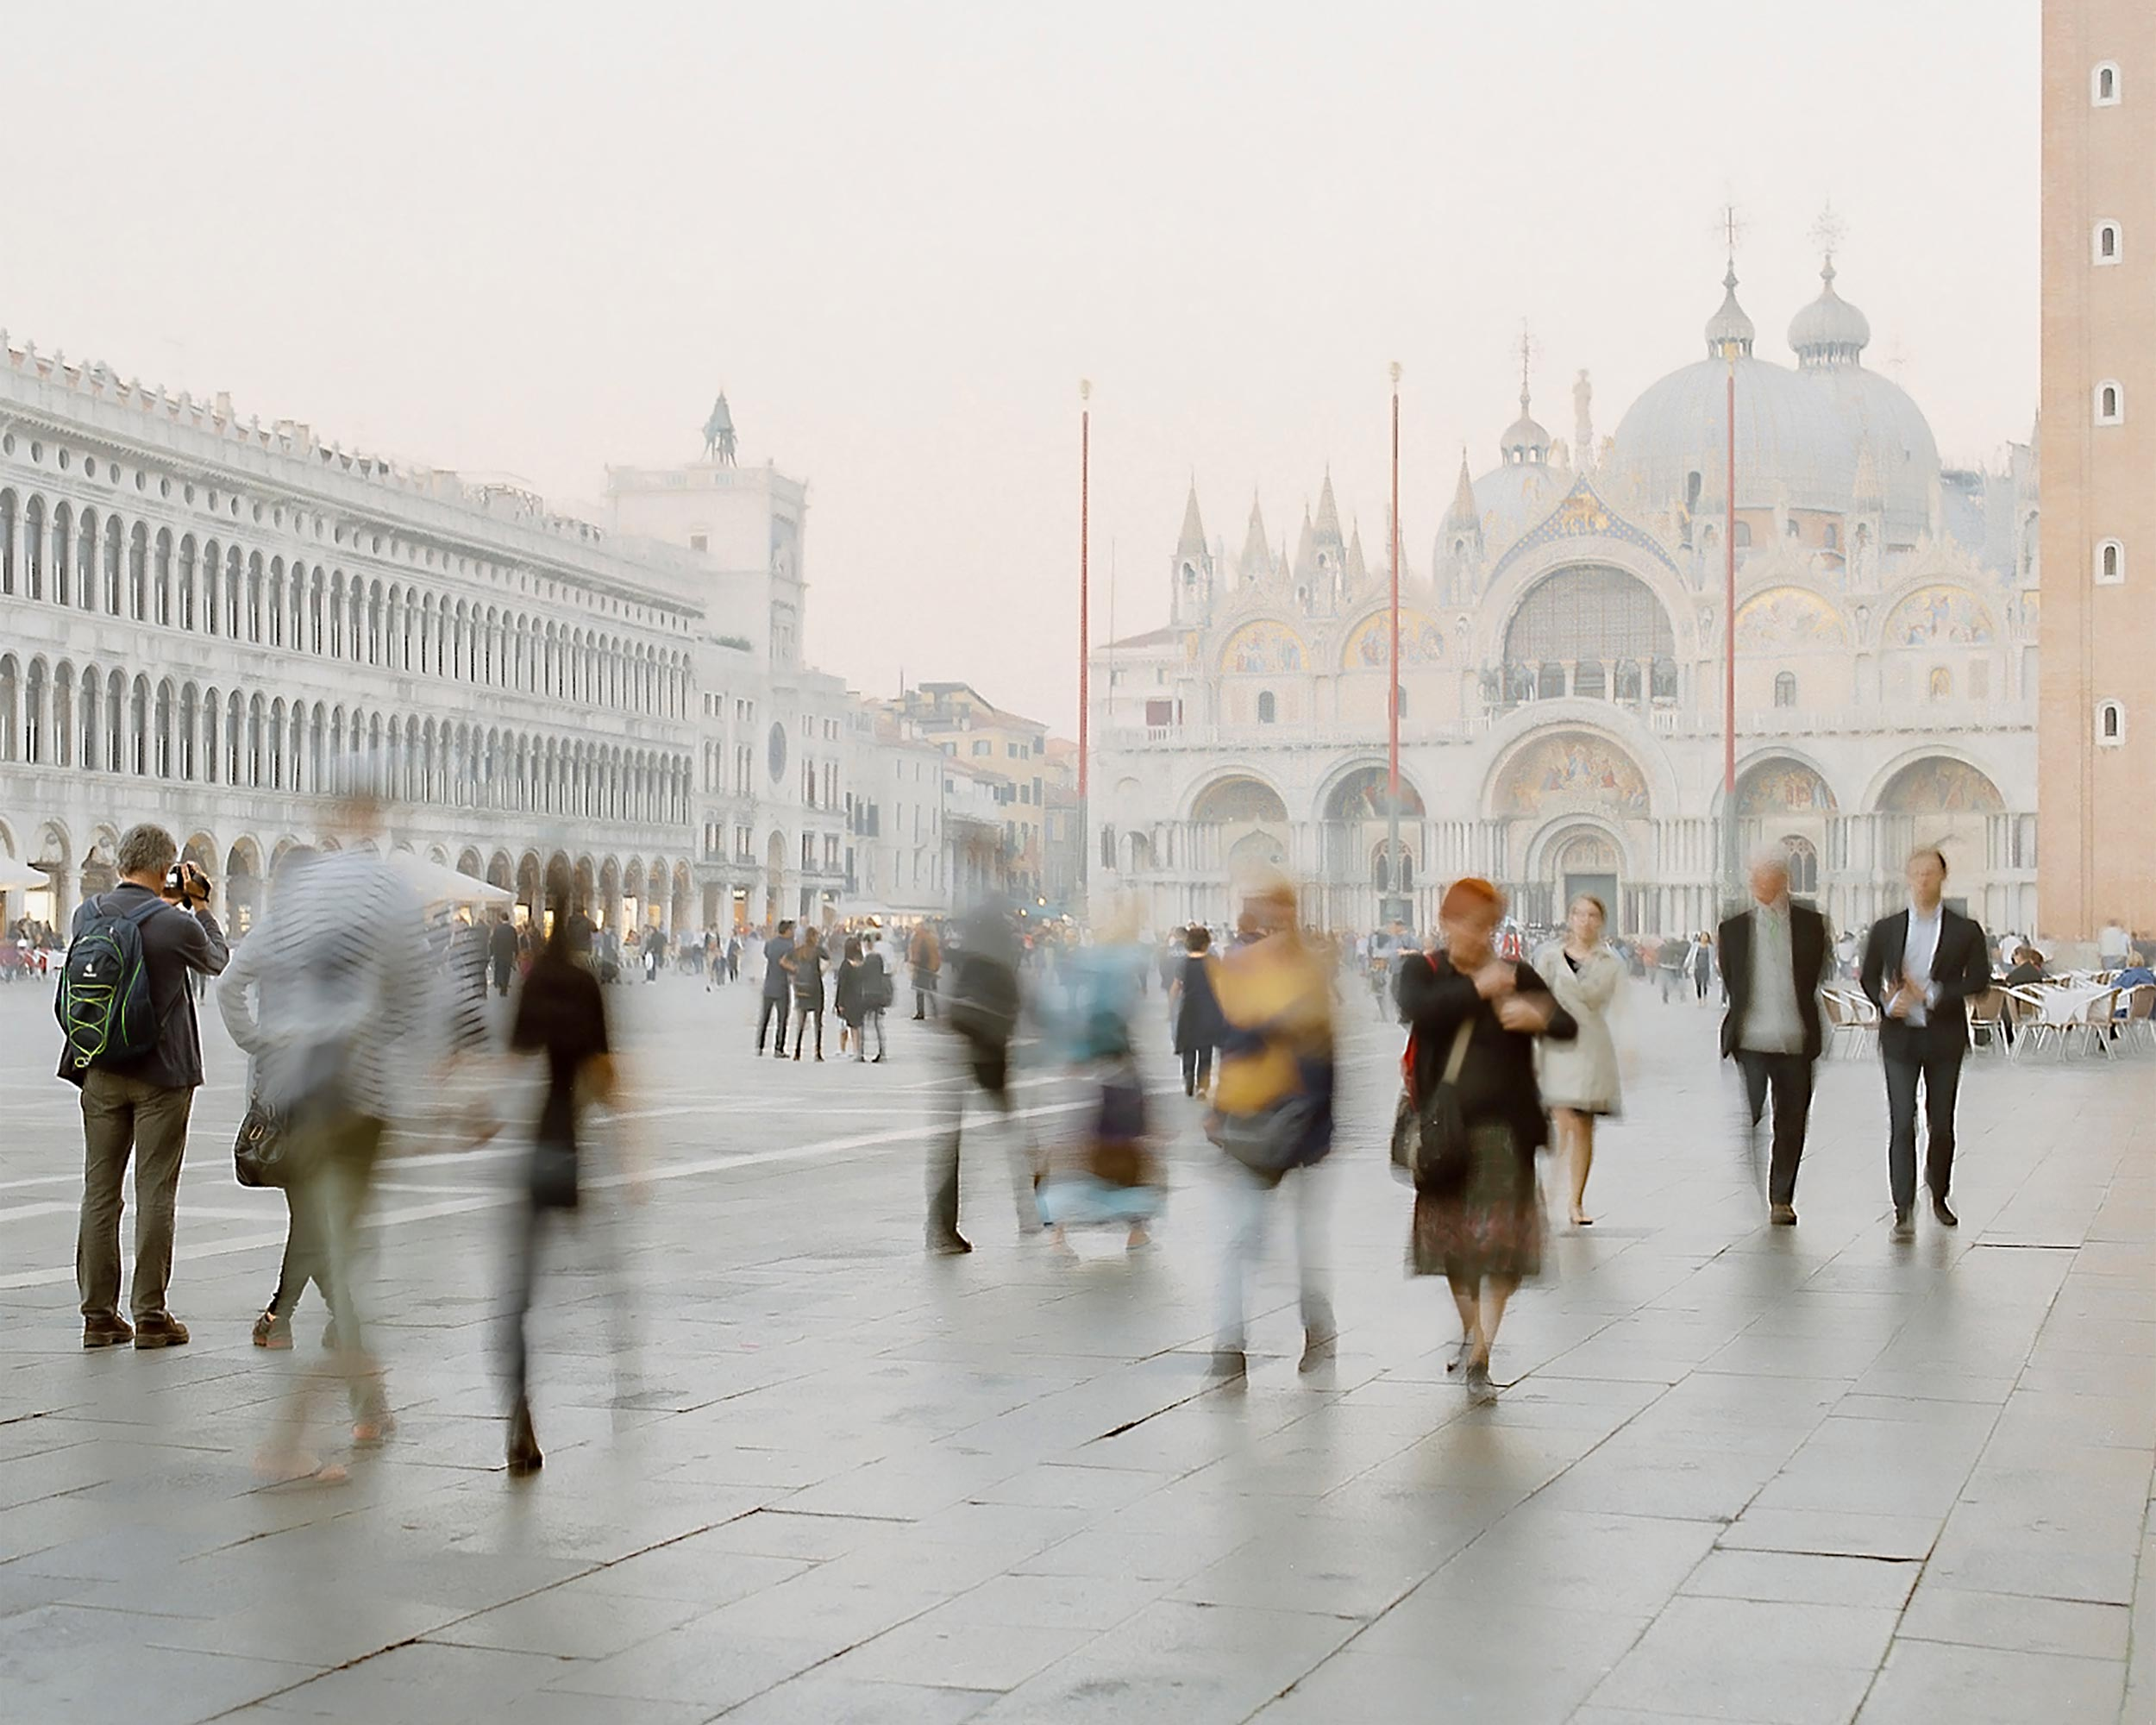 photograph of busy street landscape in Venice